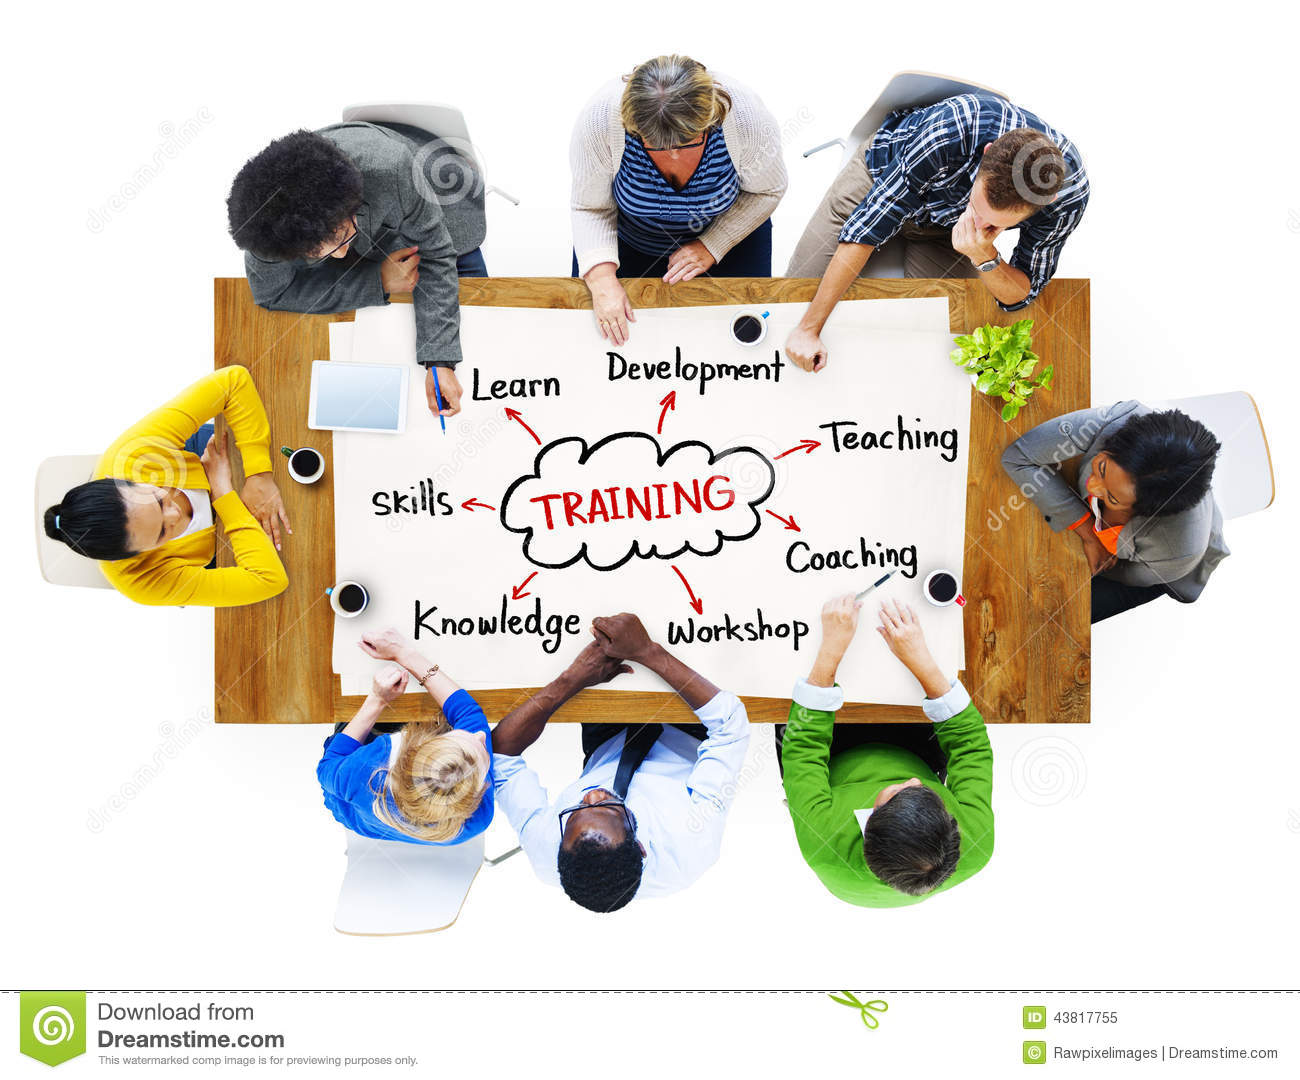 training and development for a diverse Training or development specialist holland code  training and development  specialists must communicate information clearly and facilitate learning by diverse .